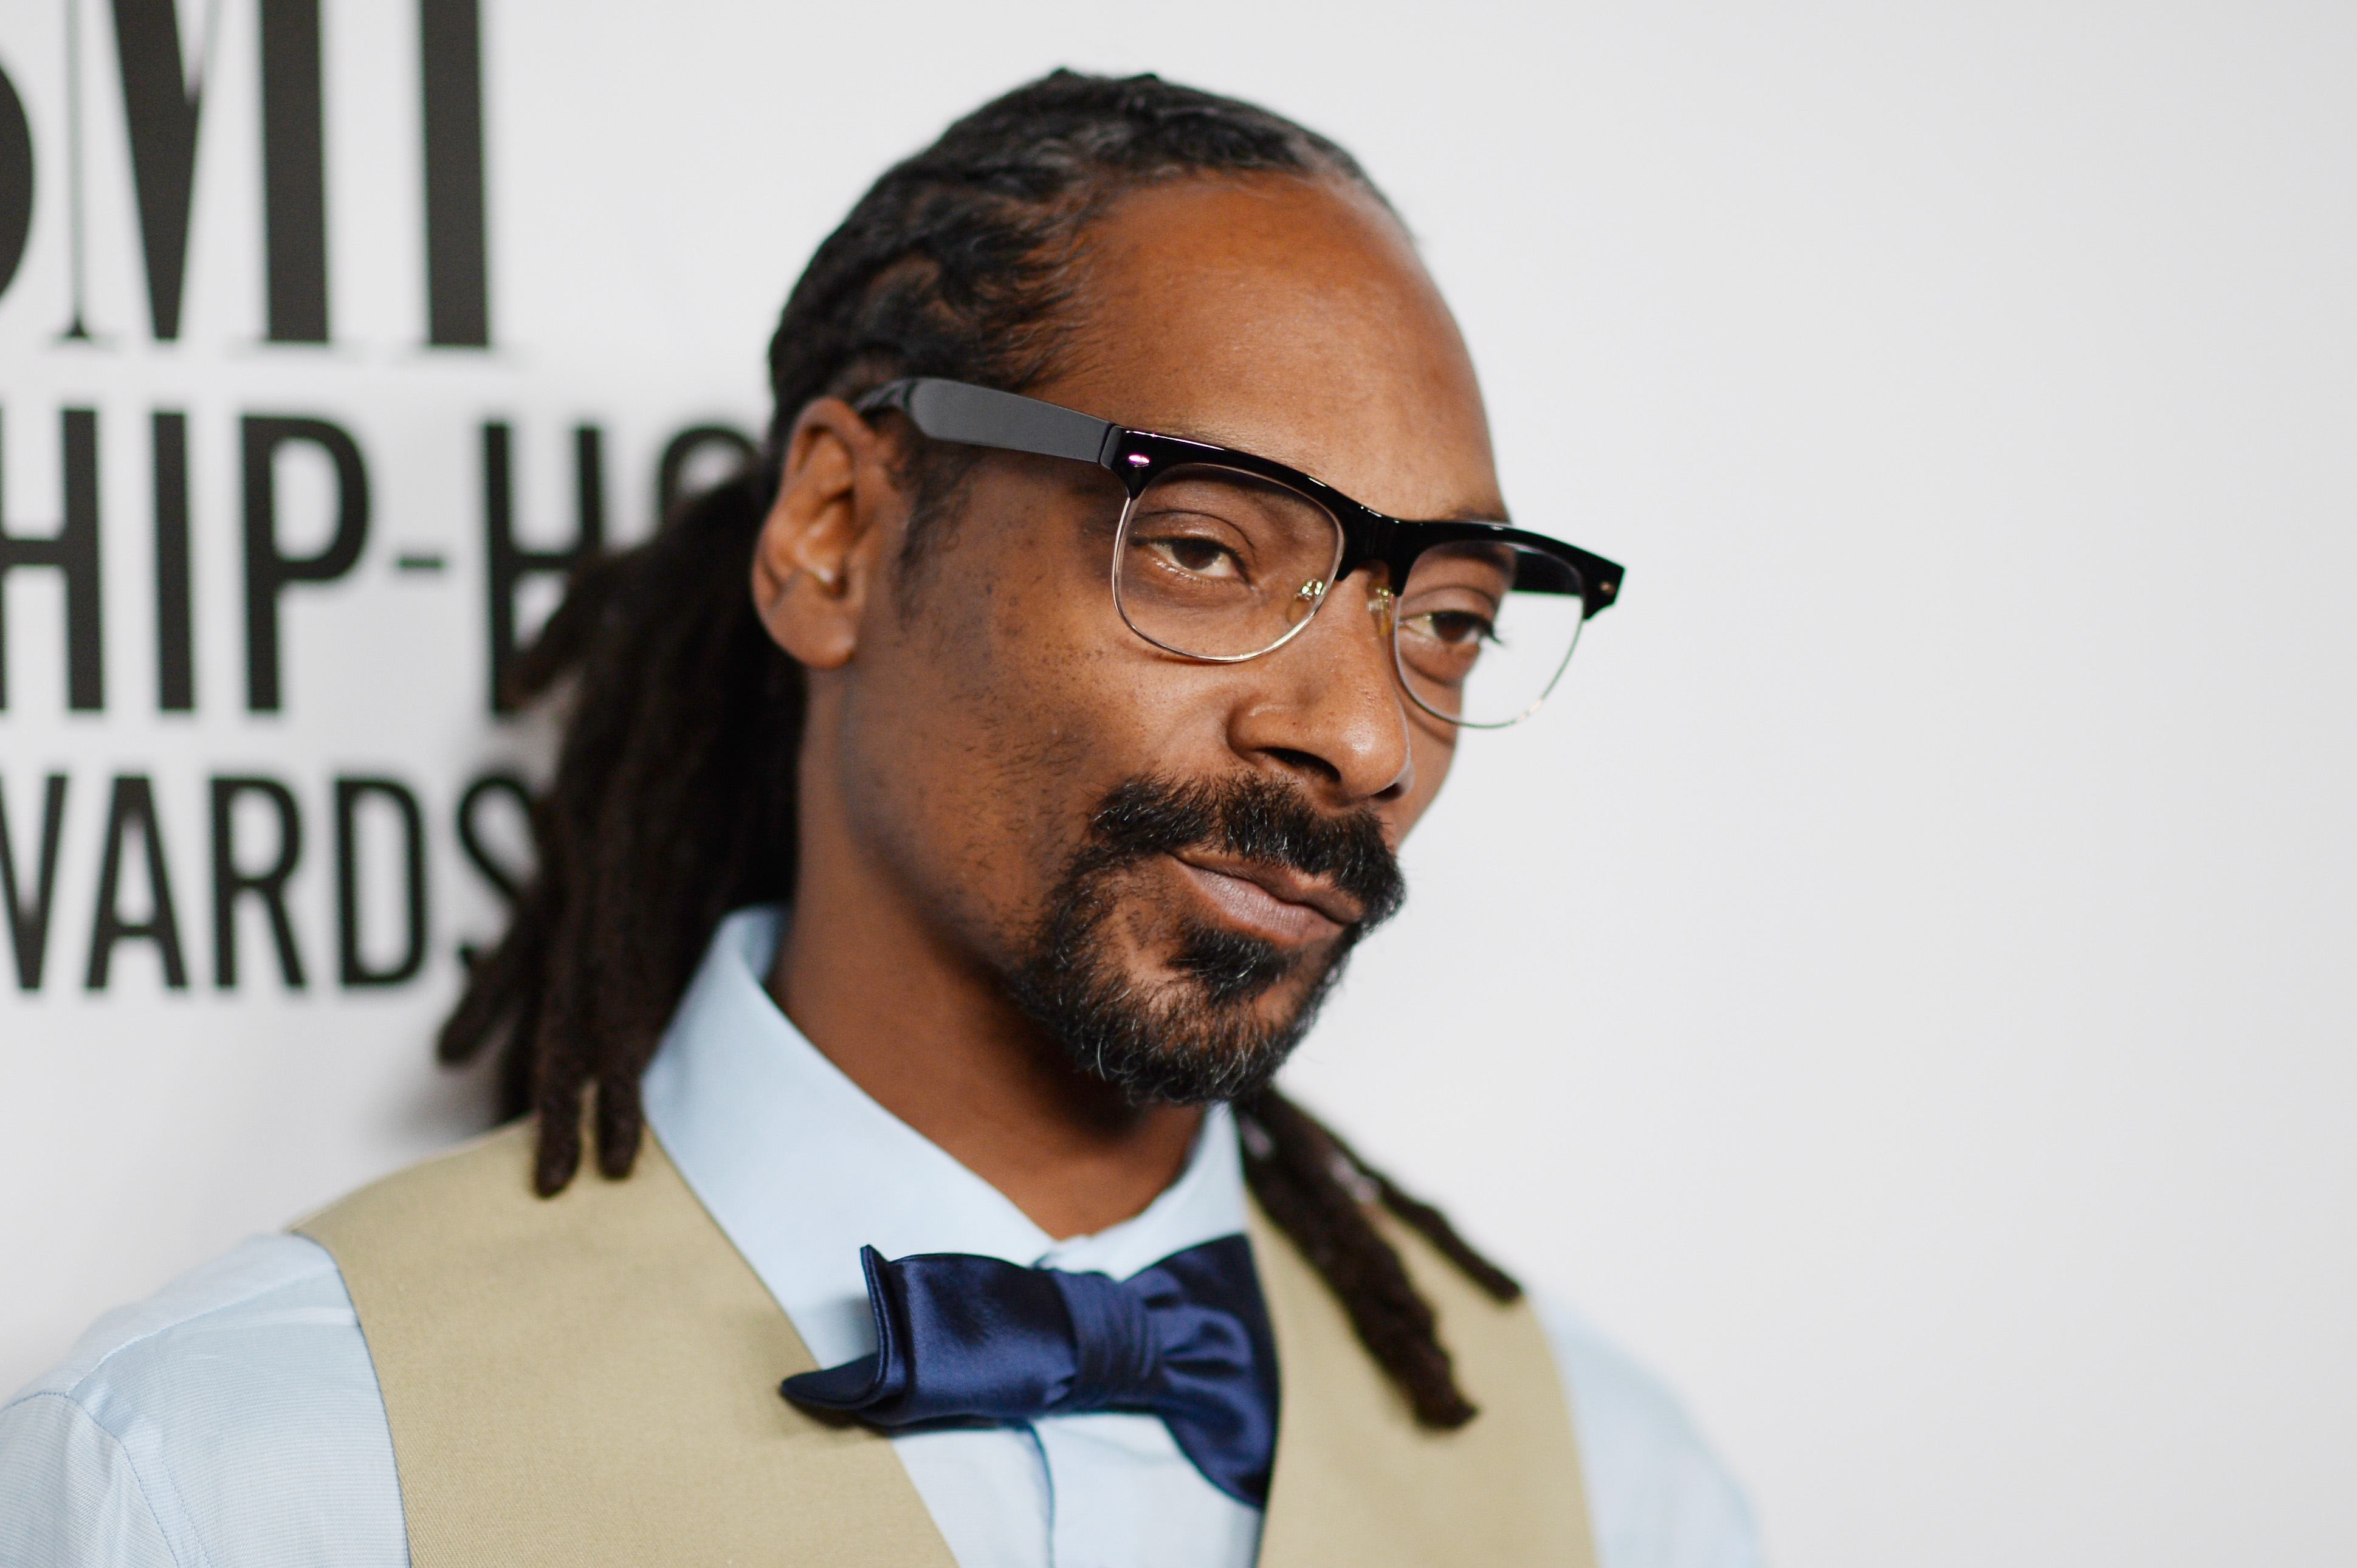 Woman Gets Random Voicemail From Snoop Dogg, Things Quickly Turn Heated GettyImages 485631964